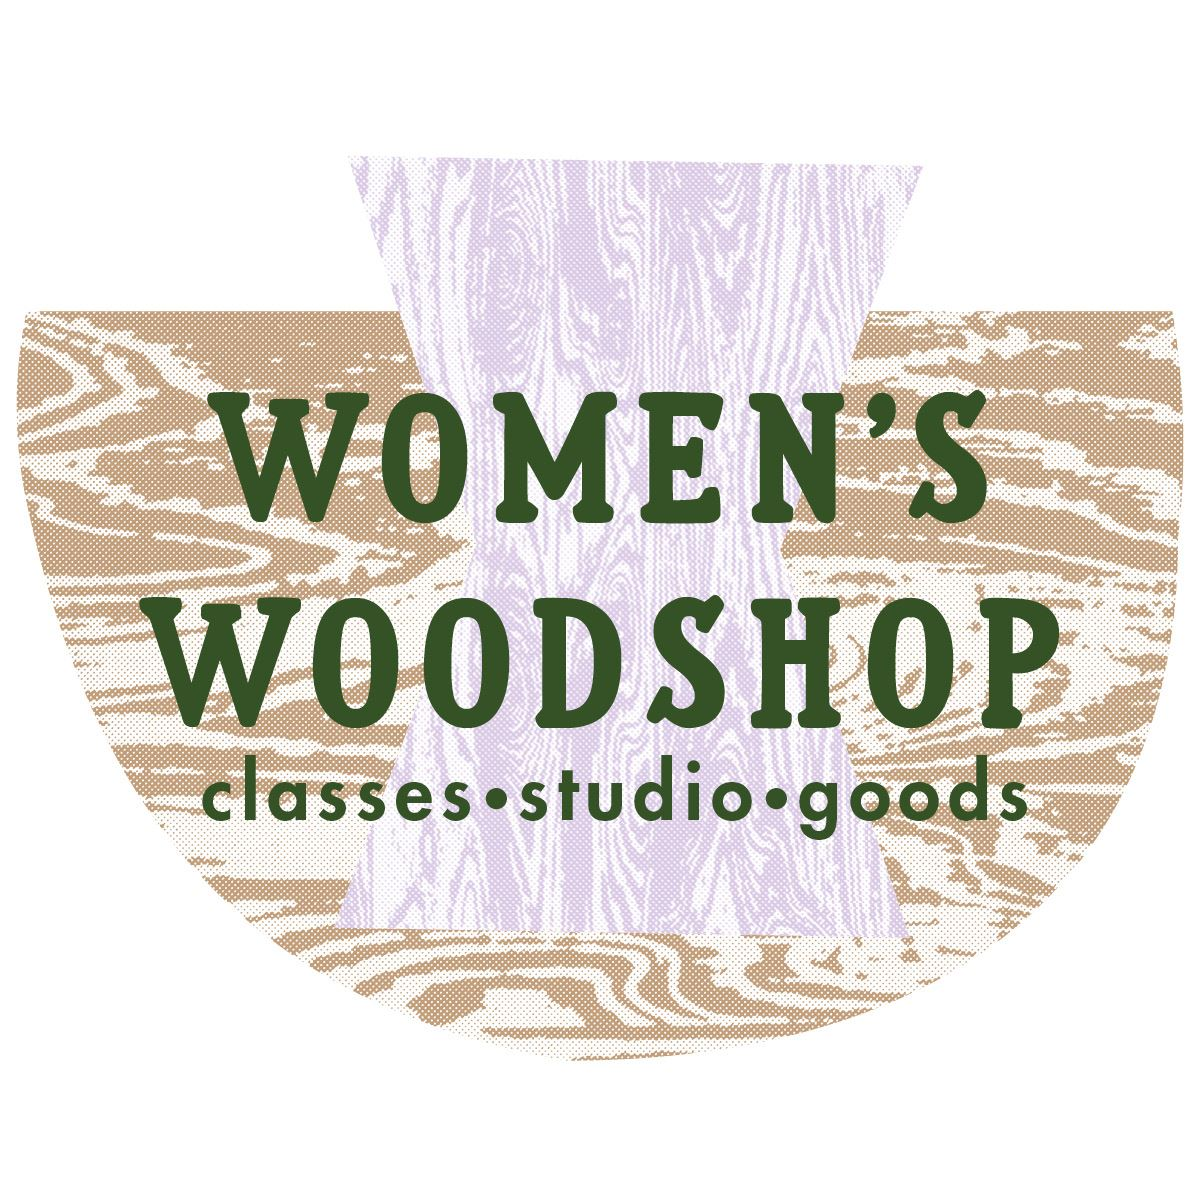 Women's Woodshop: classes, studio, goods